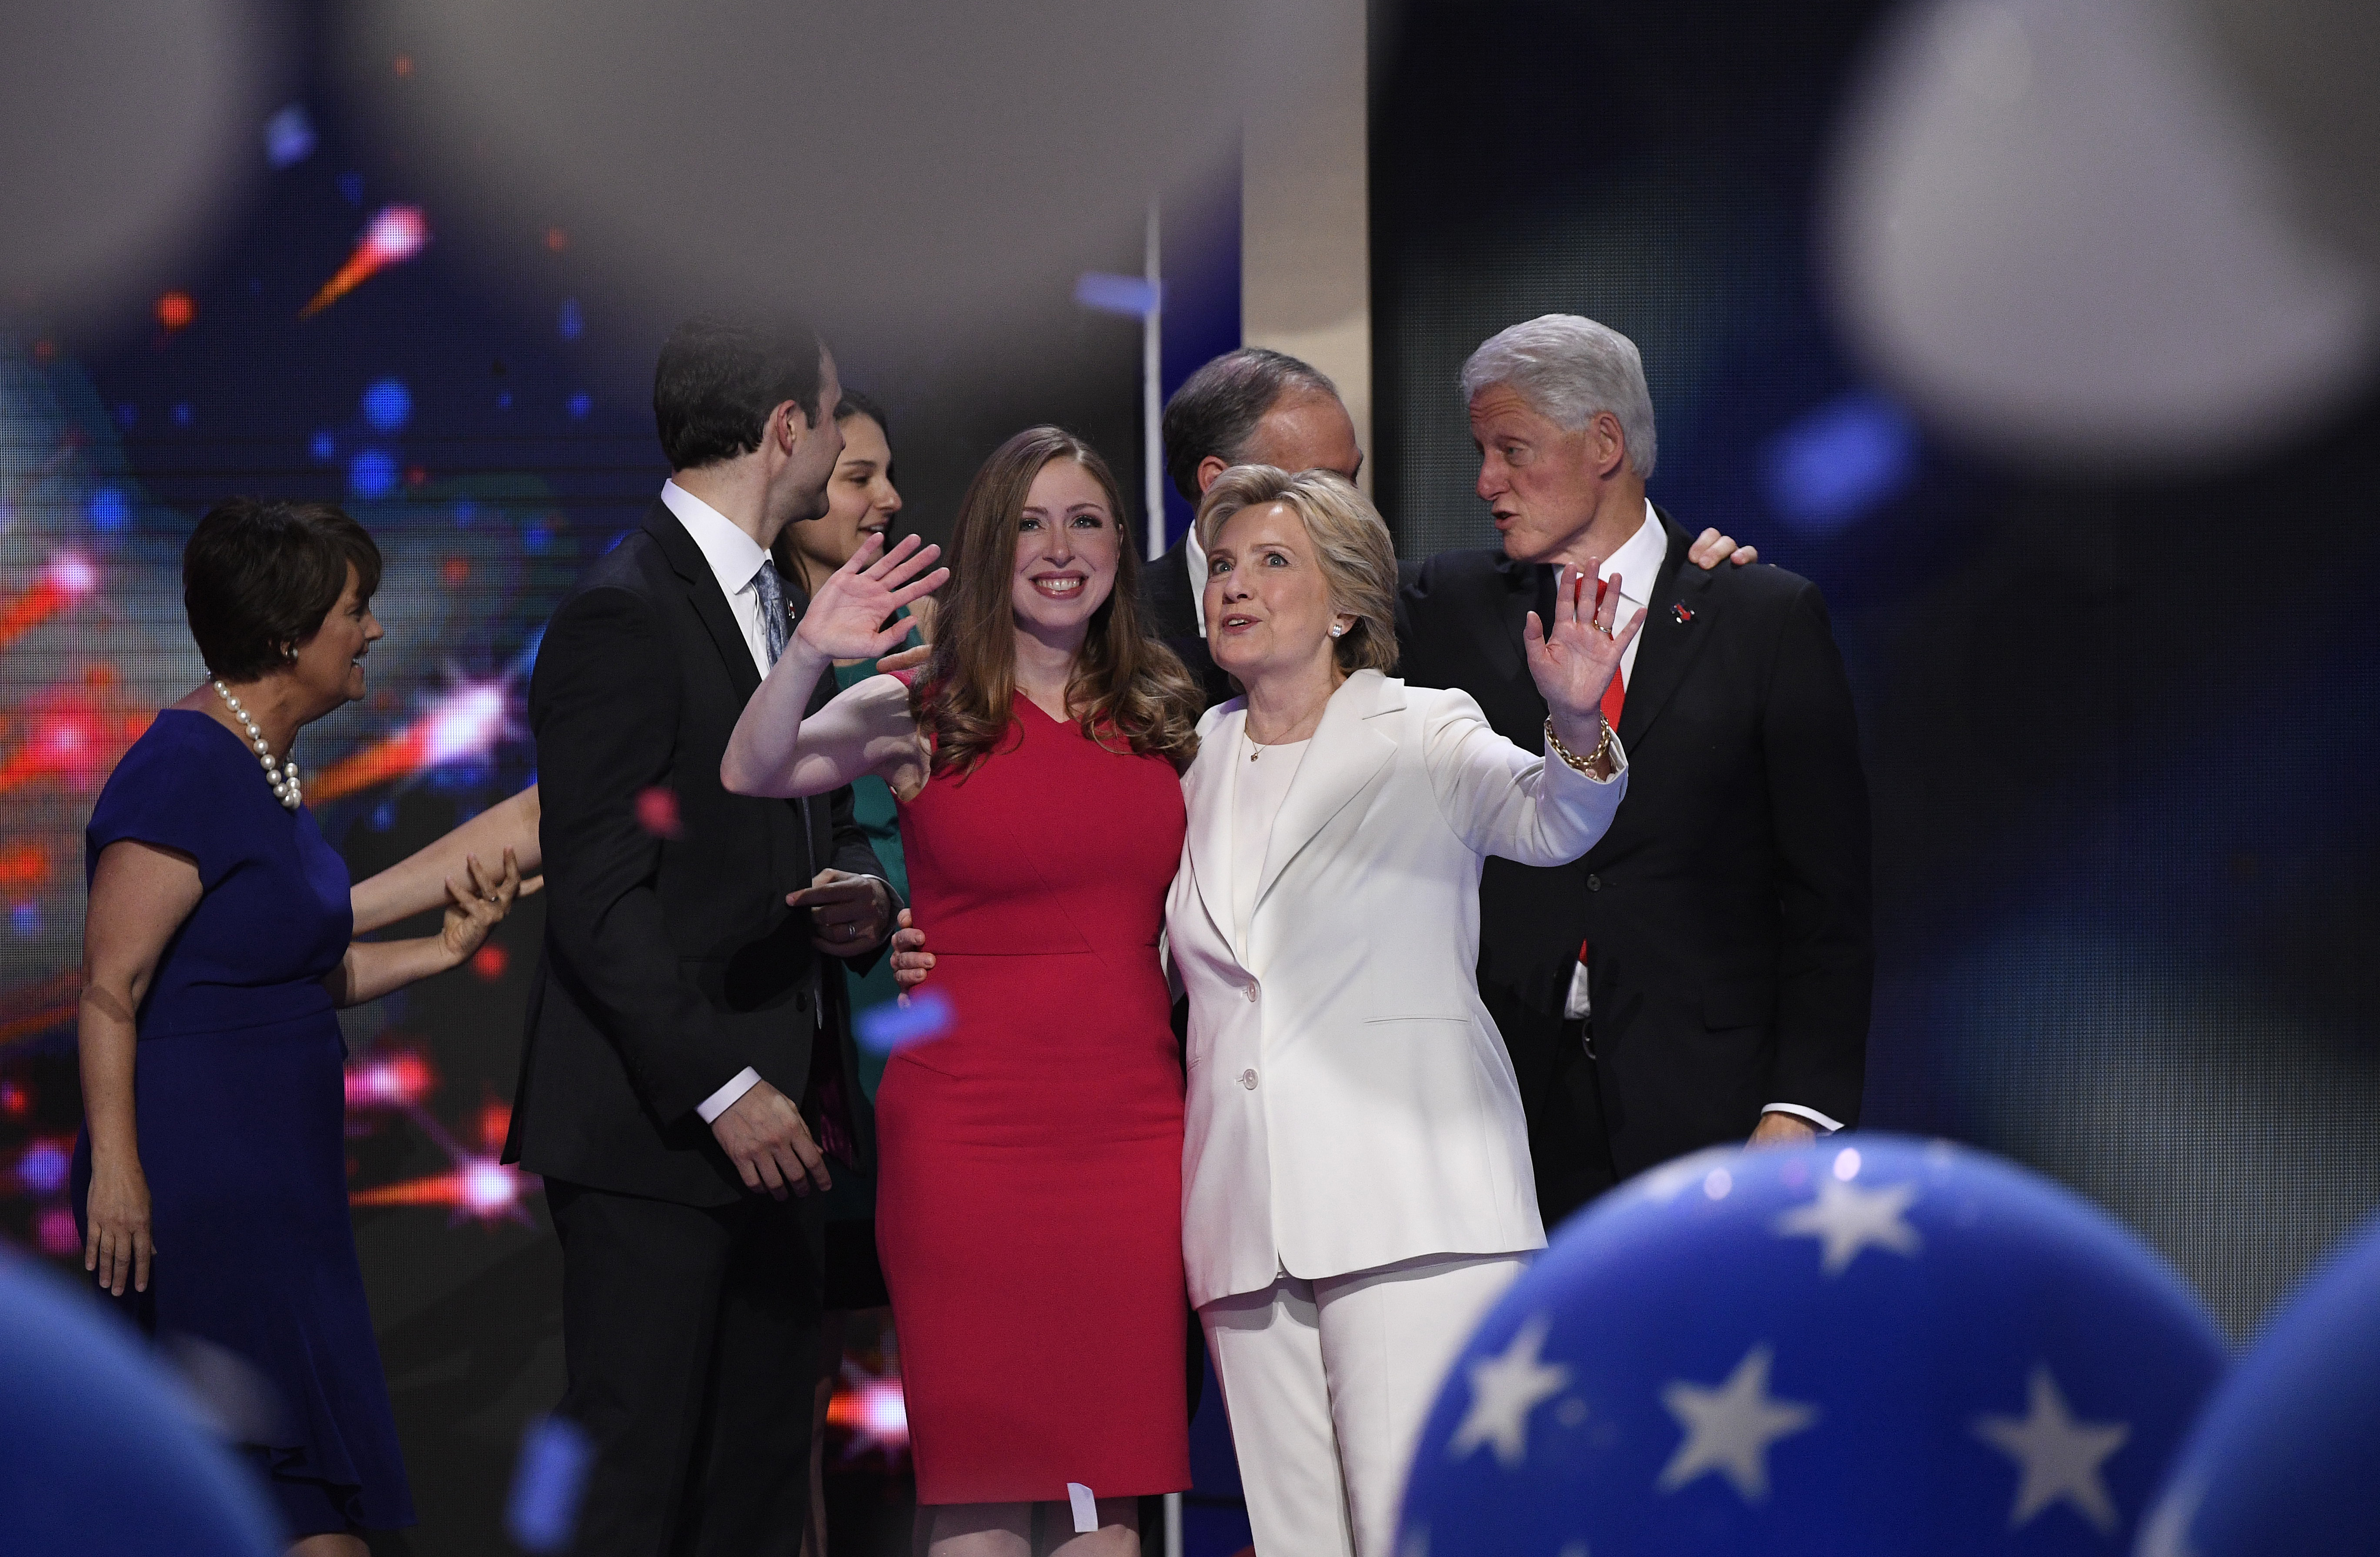 Hillary Clinton, 2016 Democratic presidential nominee, right, waves on stage with her daughter Chelsea Clinton during the Democratic National Convention (DNC) in Philadelphia, Pennsylvania, U.S., on Thursday, July 28, 2016. Division among Democrats has been overcome through speeches from two presidents, another first lady and a vice-president, who raised the stakes for their candidate by warning that her opponent posed an unprecedented threat to American diplomacy. Photographer: David Paul Morris/Bloomberg via Getty Images